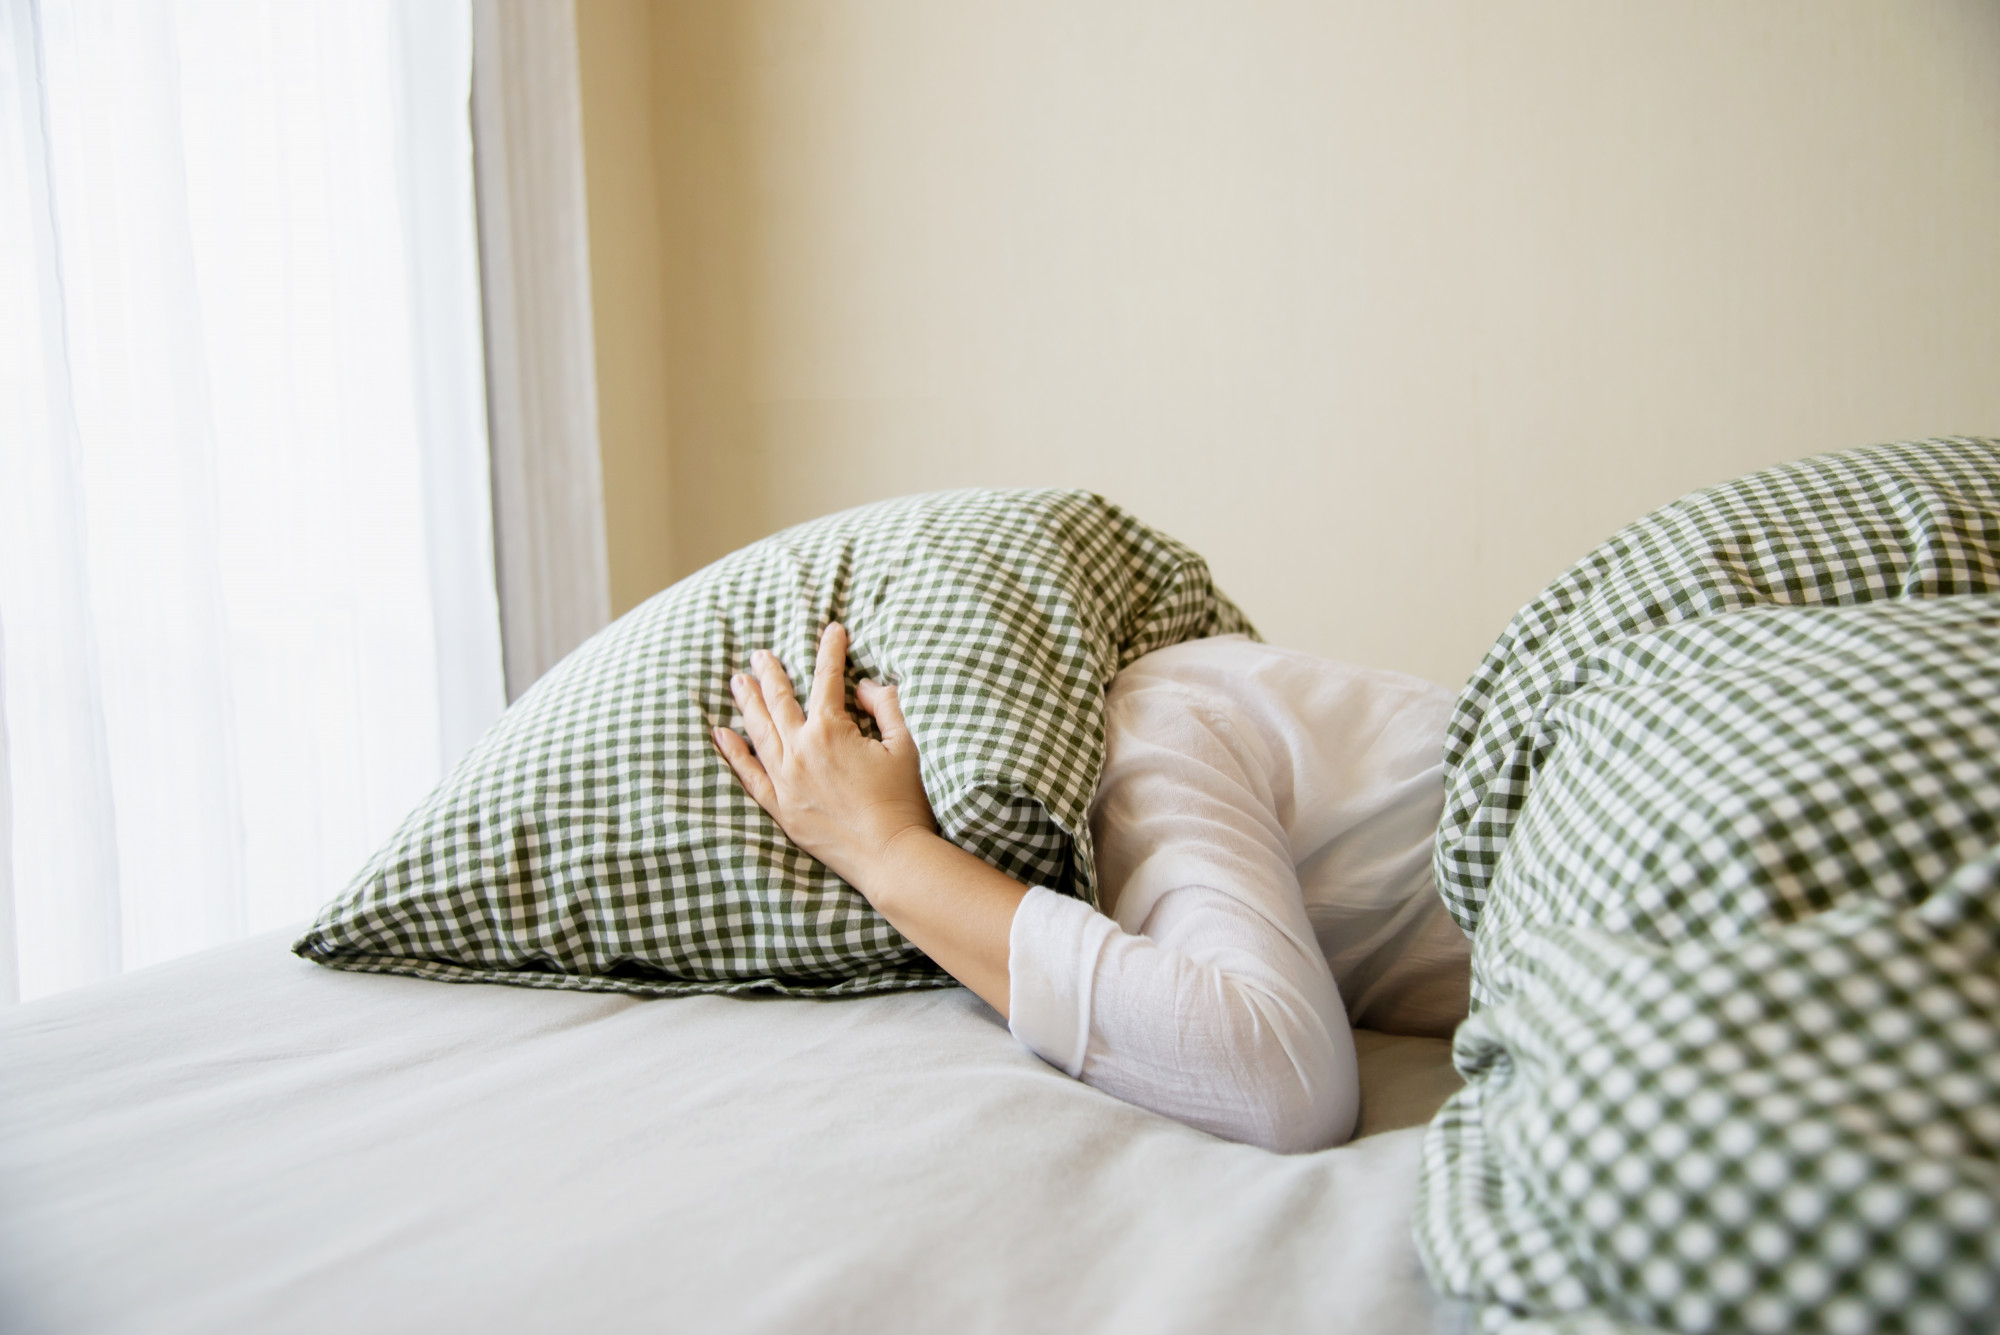 Woman covers her head with a pillow while in bed